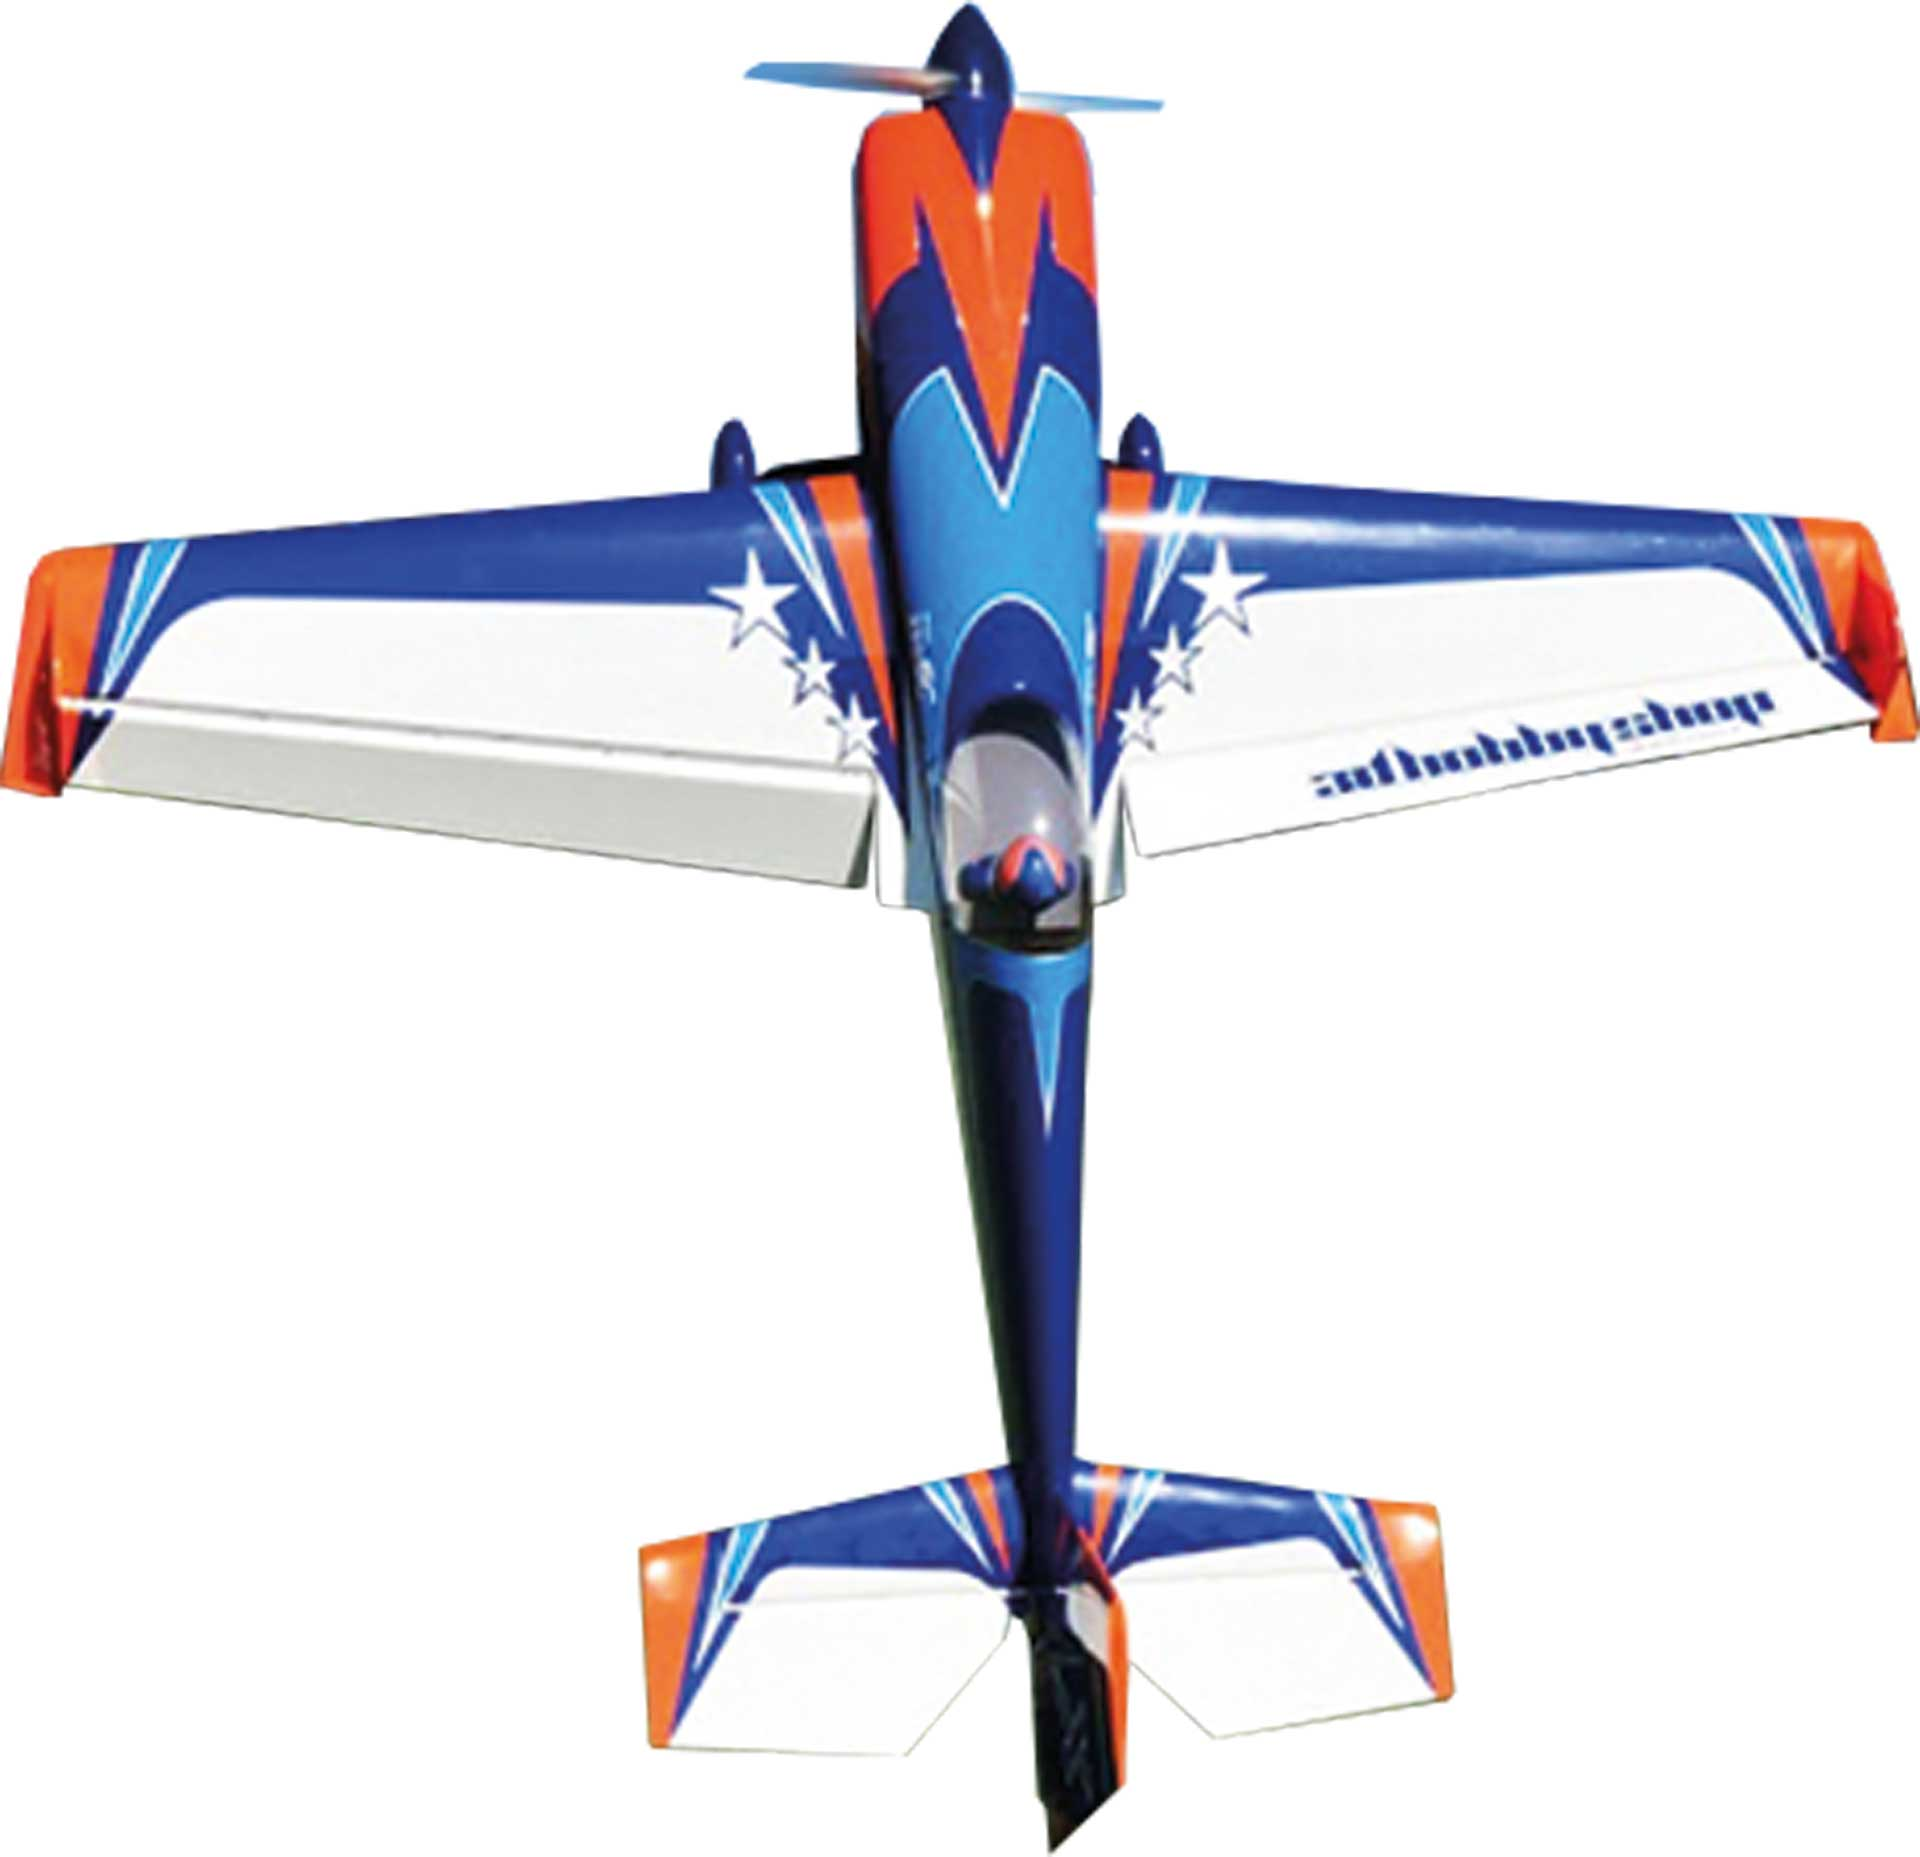 "3D HOBBY SHOP EXTRA 330SC 95"" E-VERSION BLAU / ORANGE / WEISS ARF"